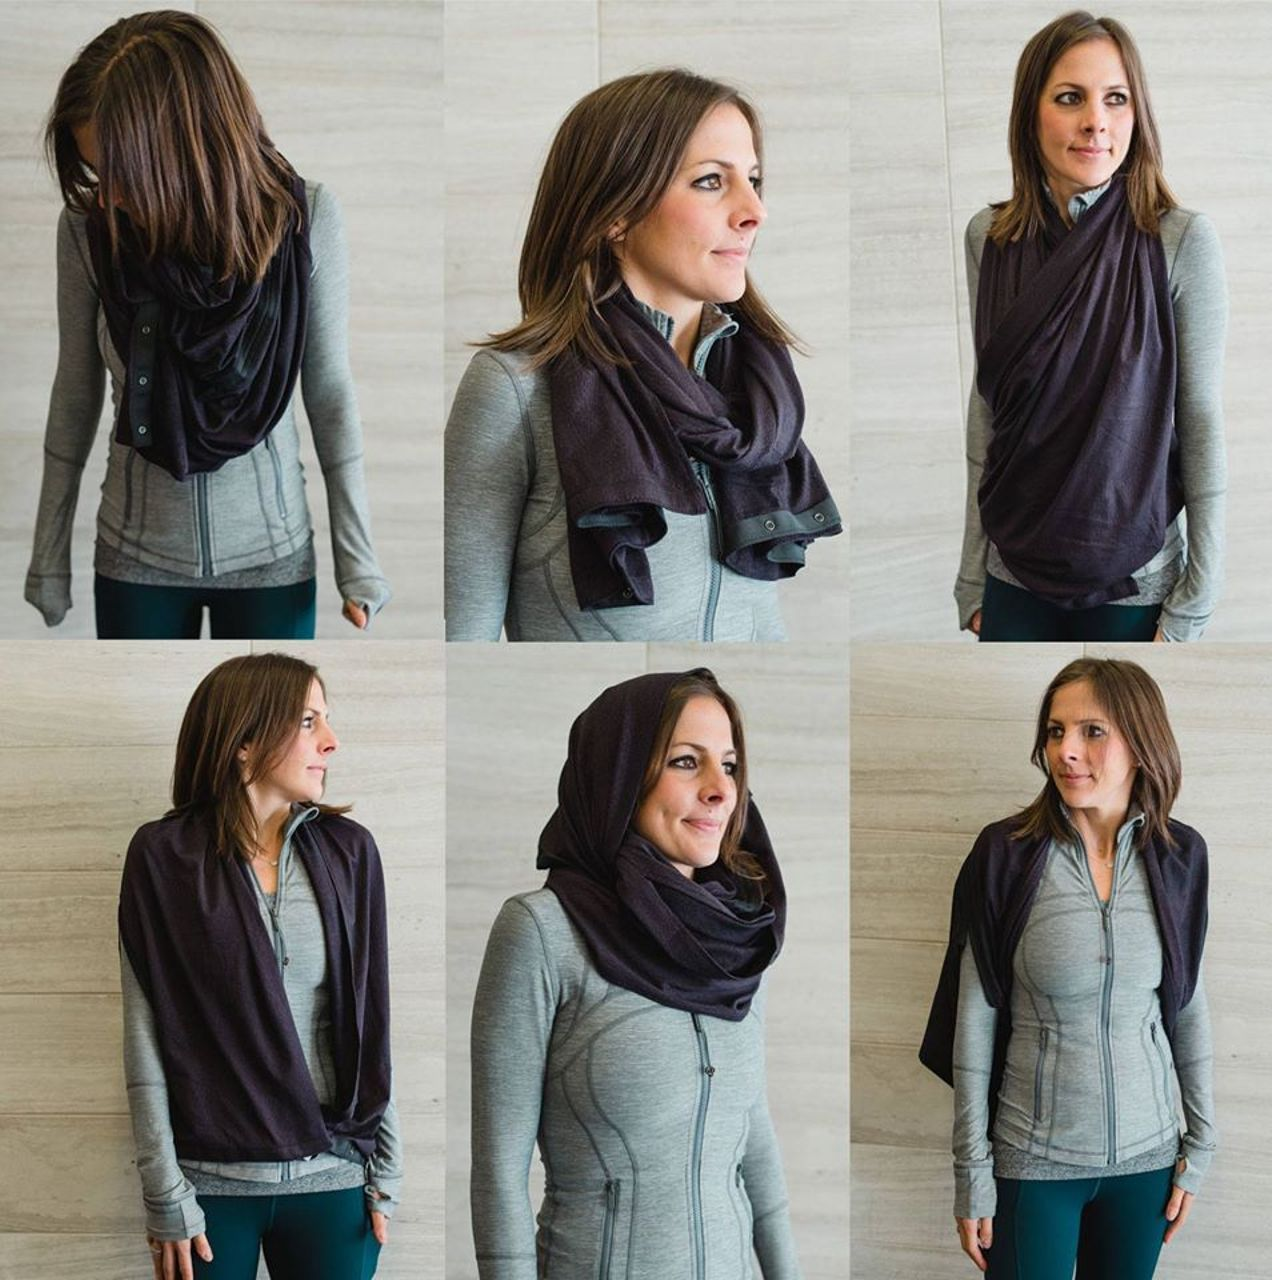 Vinyasa lululemon scarf how to wear video advise to wear for everyday in 2019